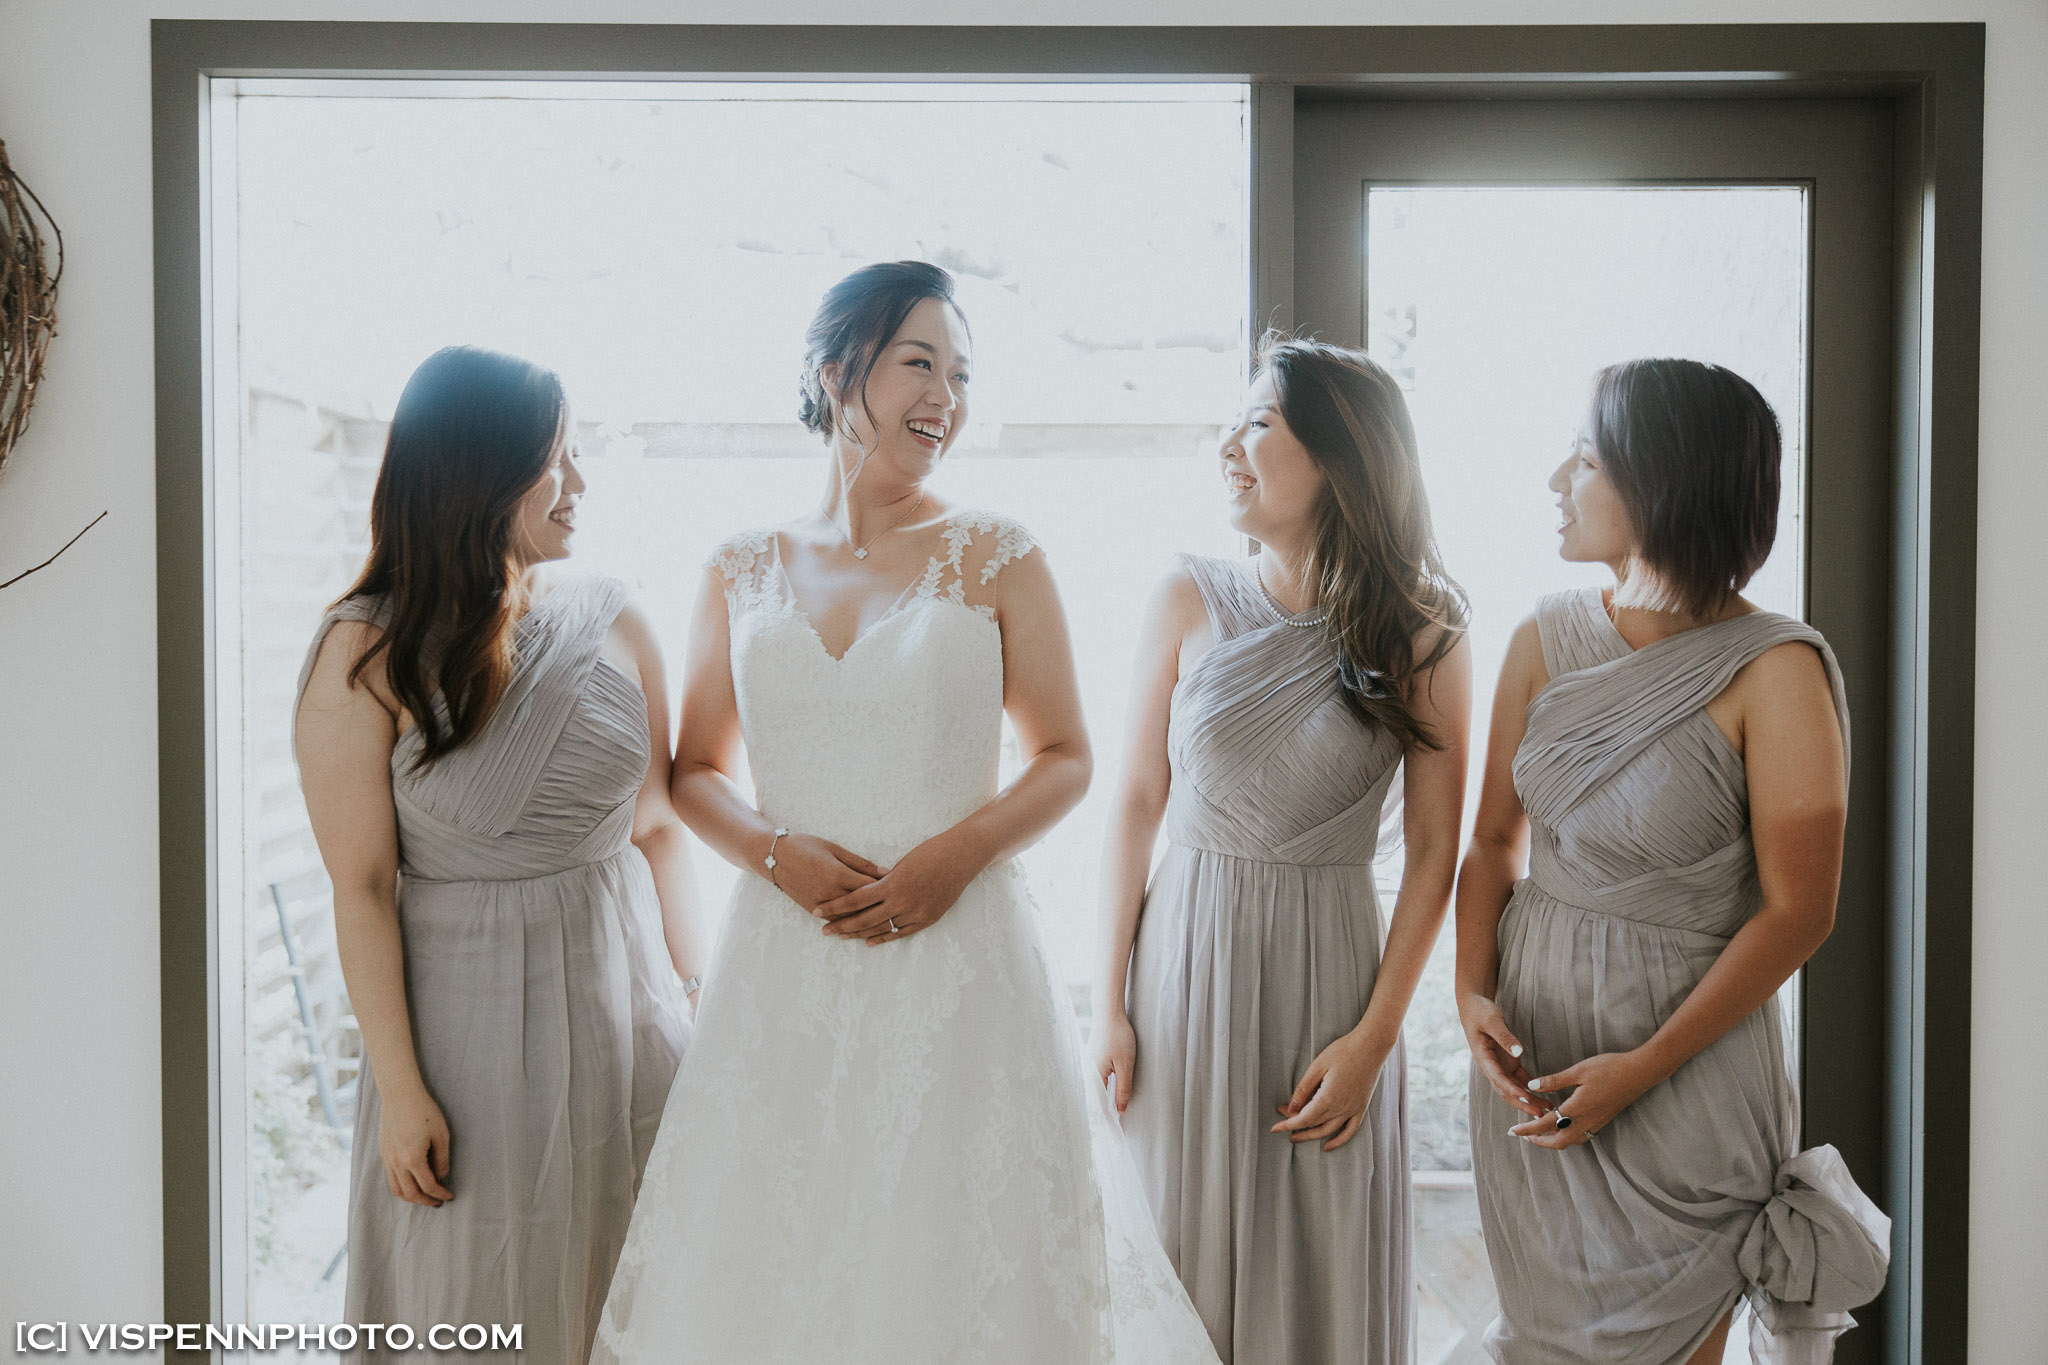 WEDDING DAY Photography Melbourne VISPENN 墨尔本 婚礼跟拍 婚礼摄像 婚礼摄影 结婚照 登记照 LeanneWesley 02375 1P EOSR VISPENN